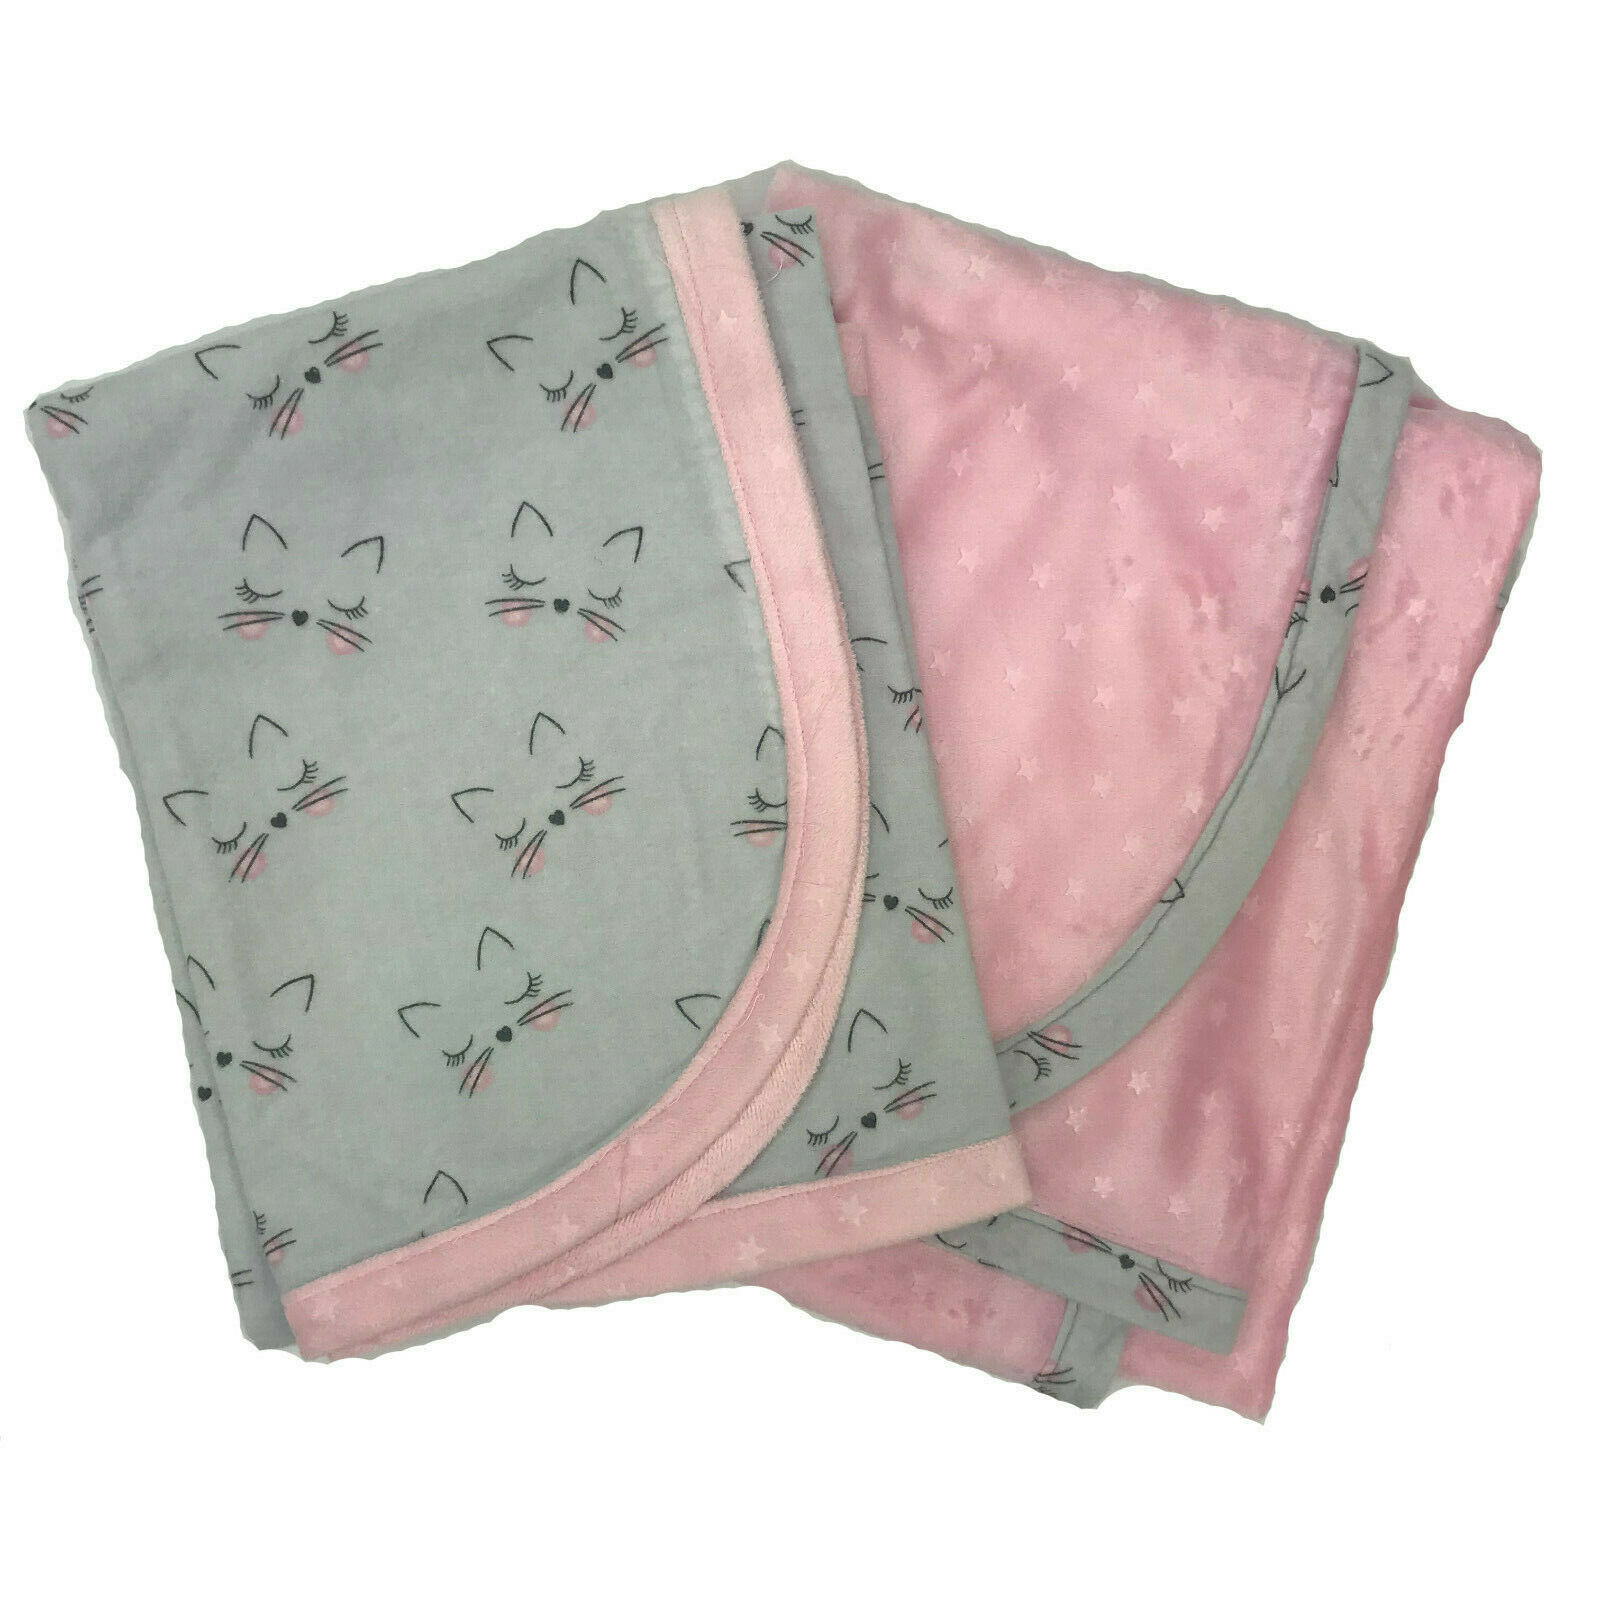 New Baby Soft Flannel Receiving Blankets Handmade 36 x 36 Sets of 2 - $19.99